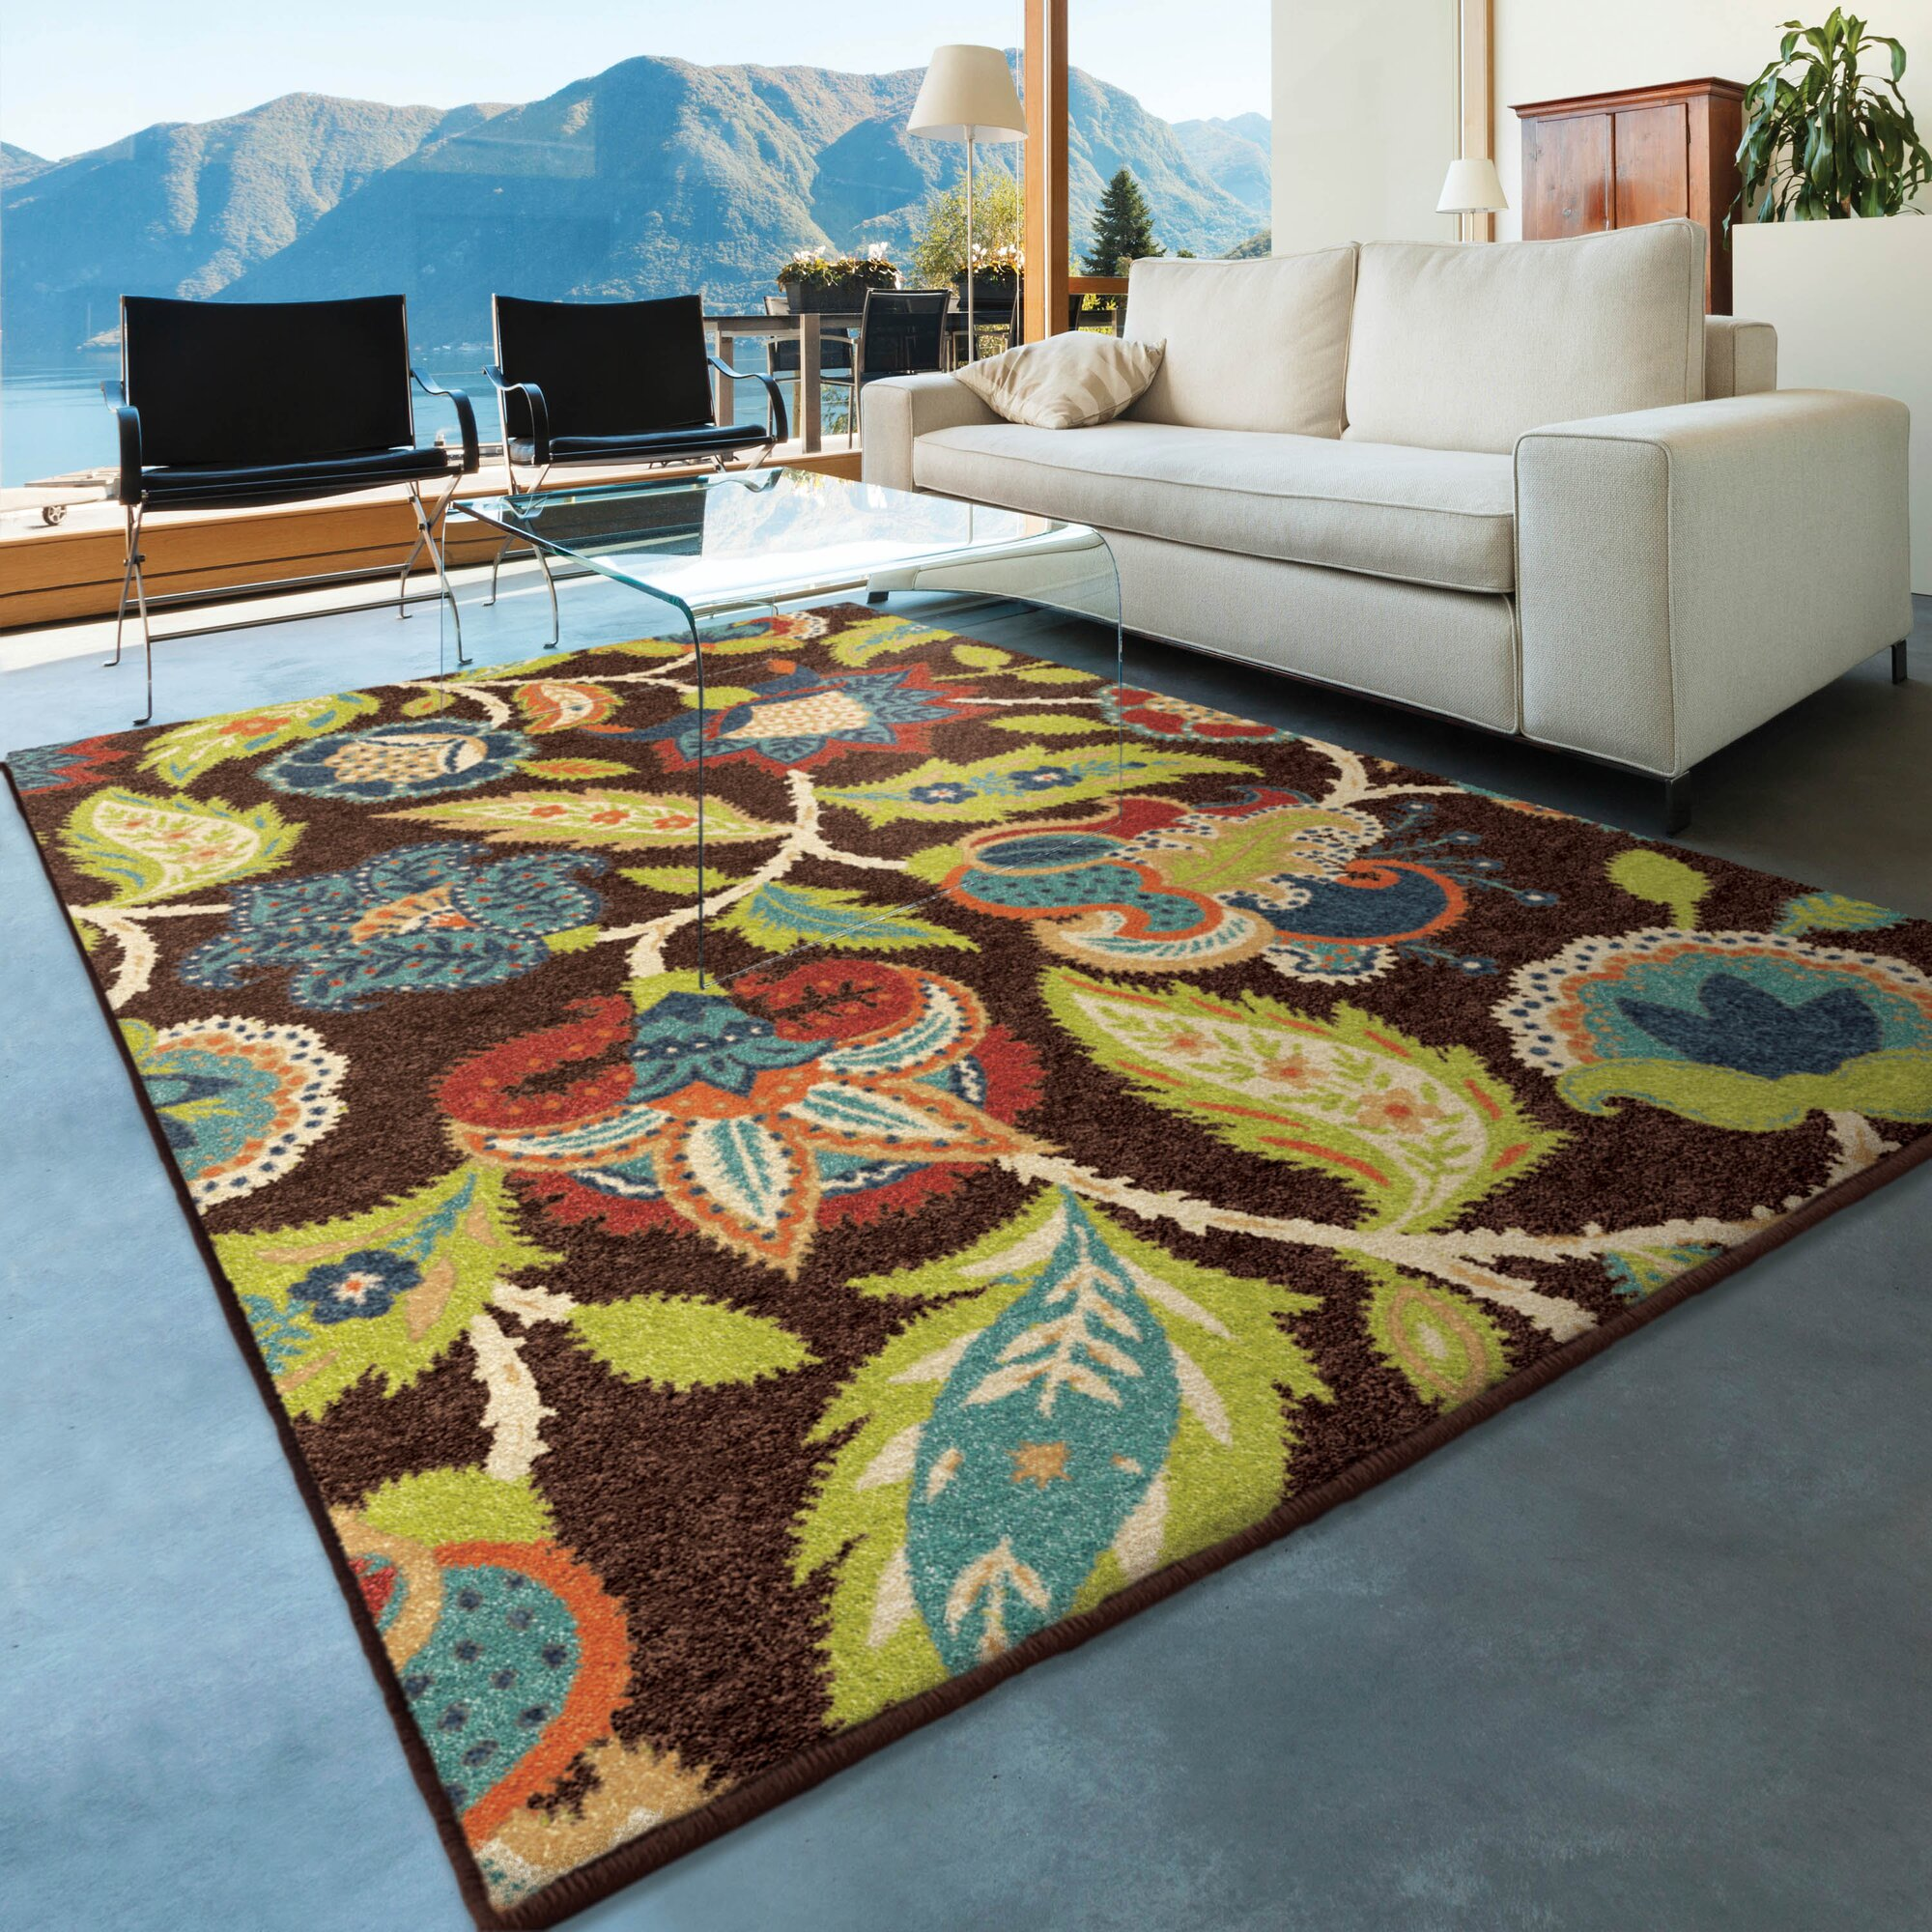 8x10 Indoor Outdoor Area Rugs: Threadbind Orwell Brown Indoor/Outdoor Area Rug & Reviews